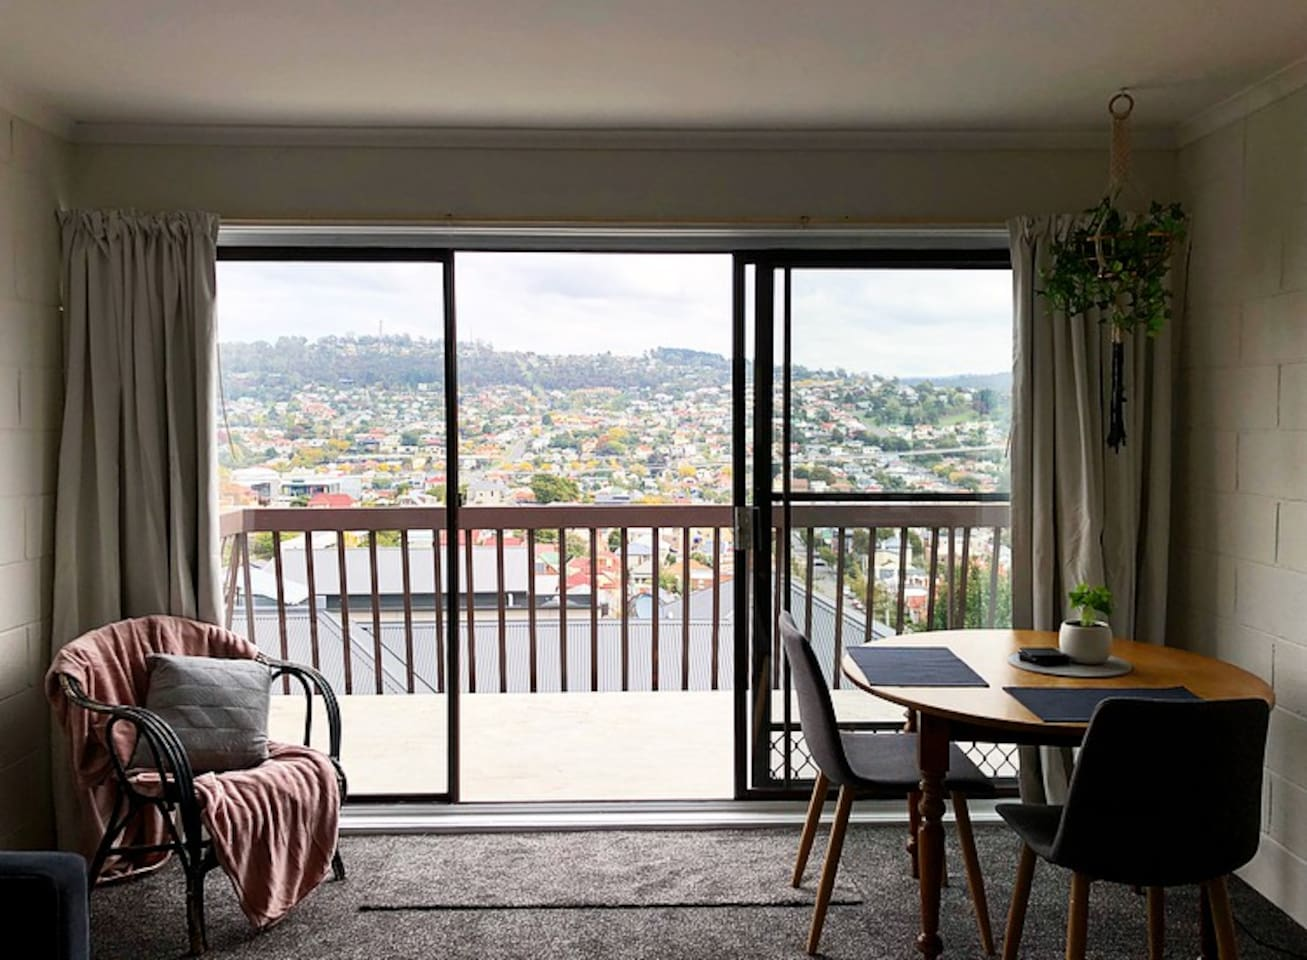 View onto the balcony from the main living space